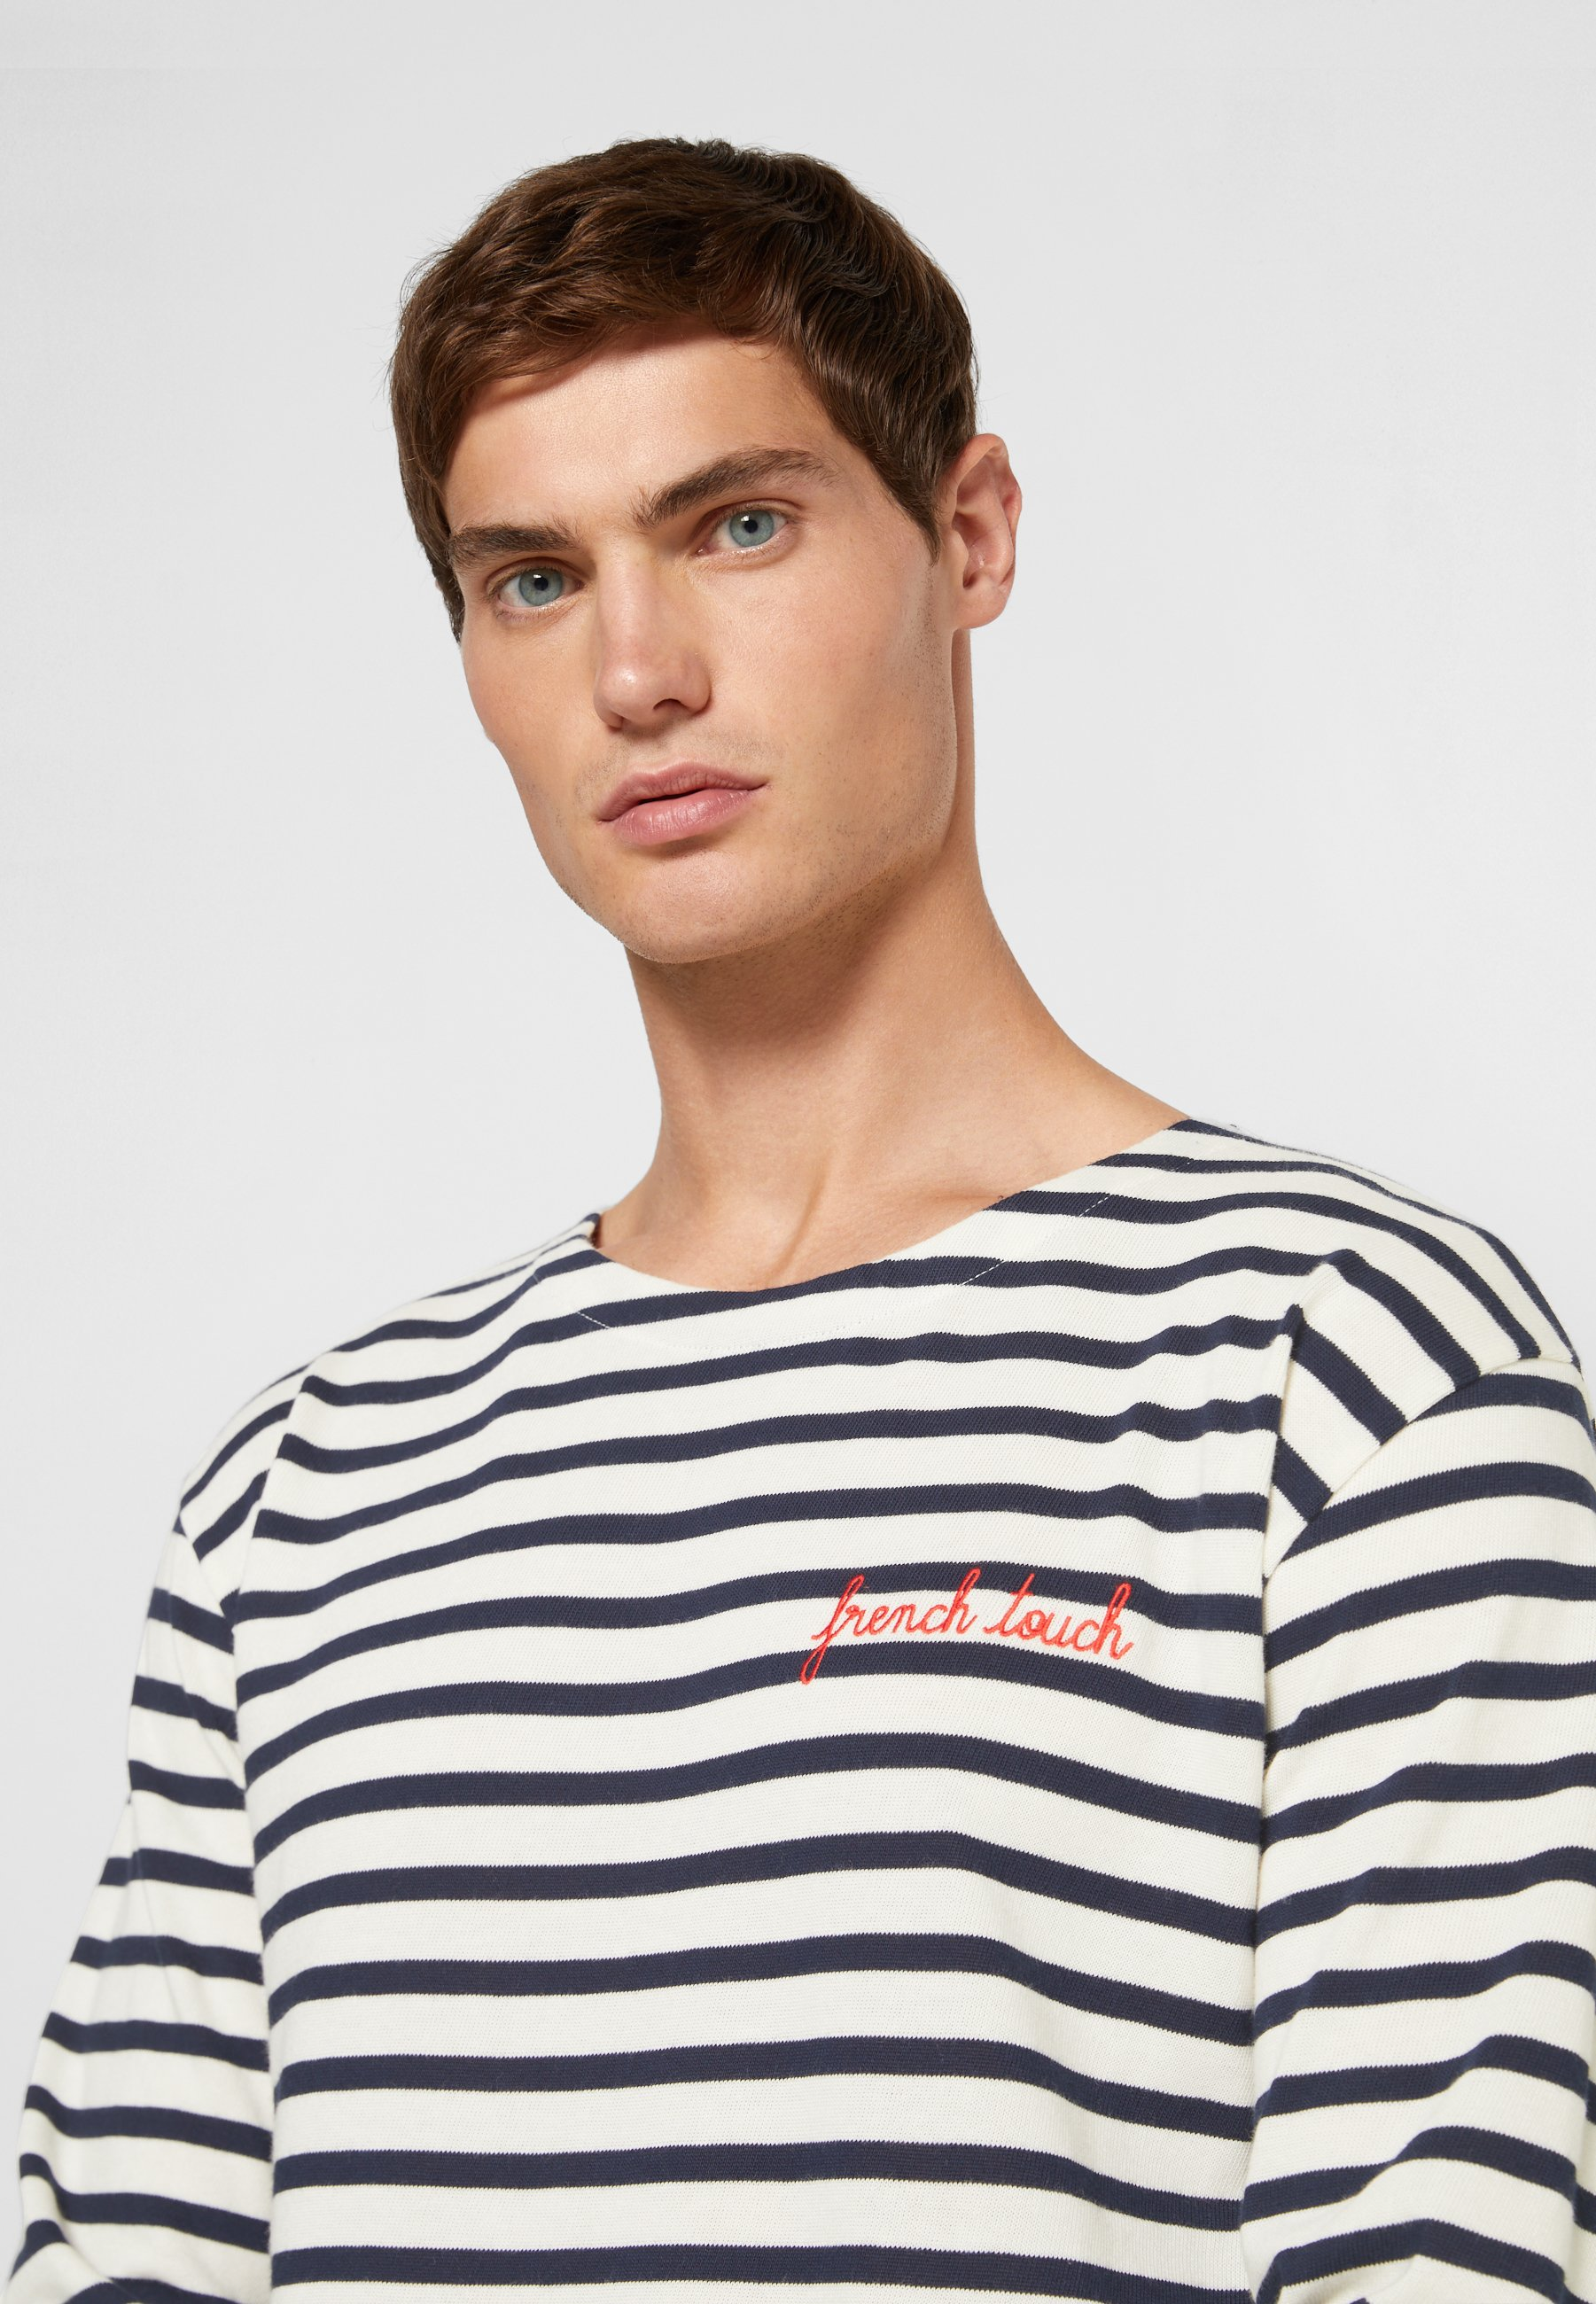 Herren SAILOR  COLOMBIER FRENCH TOUCH  - Langarmshirt